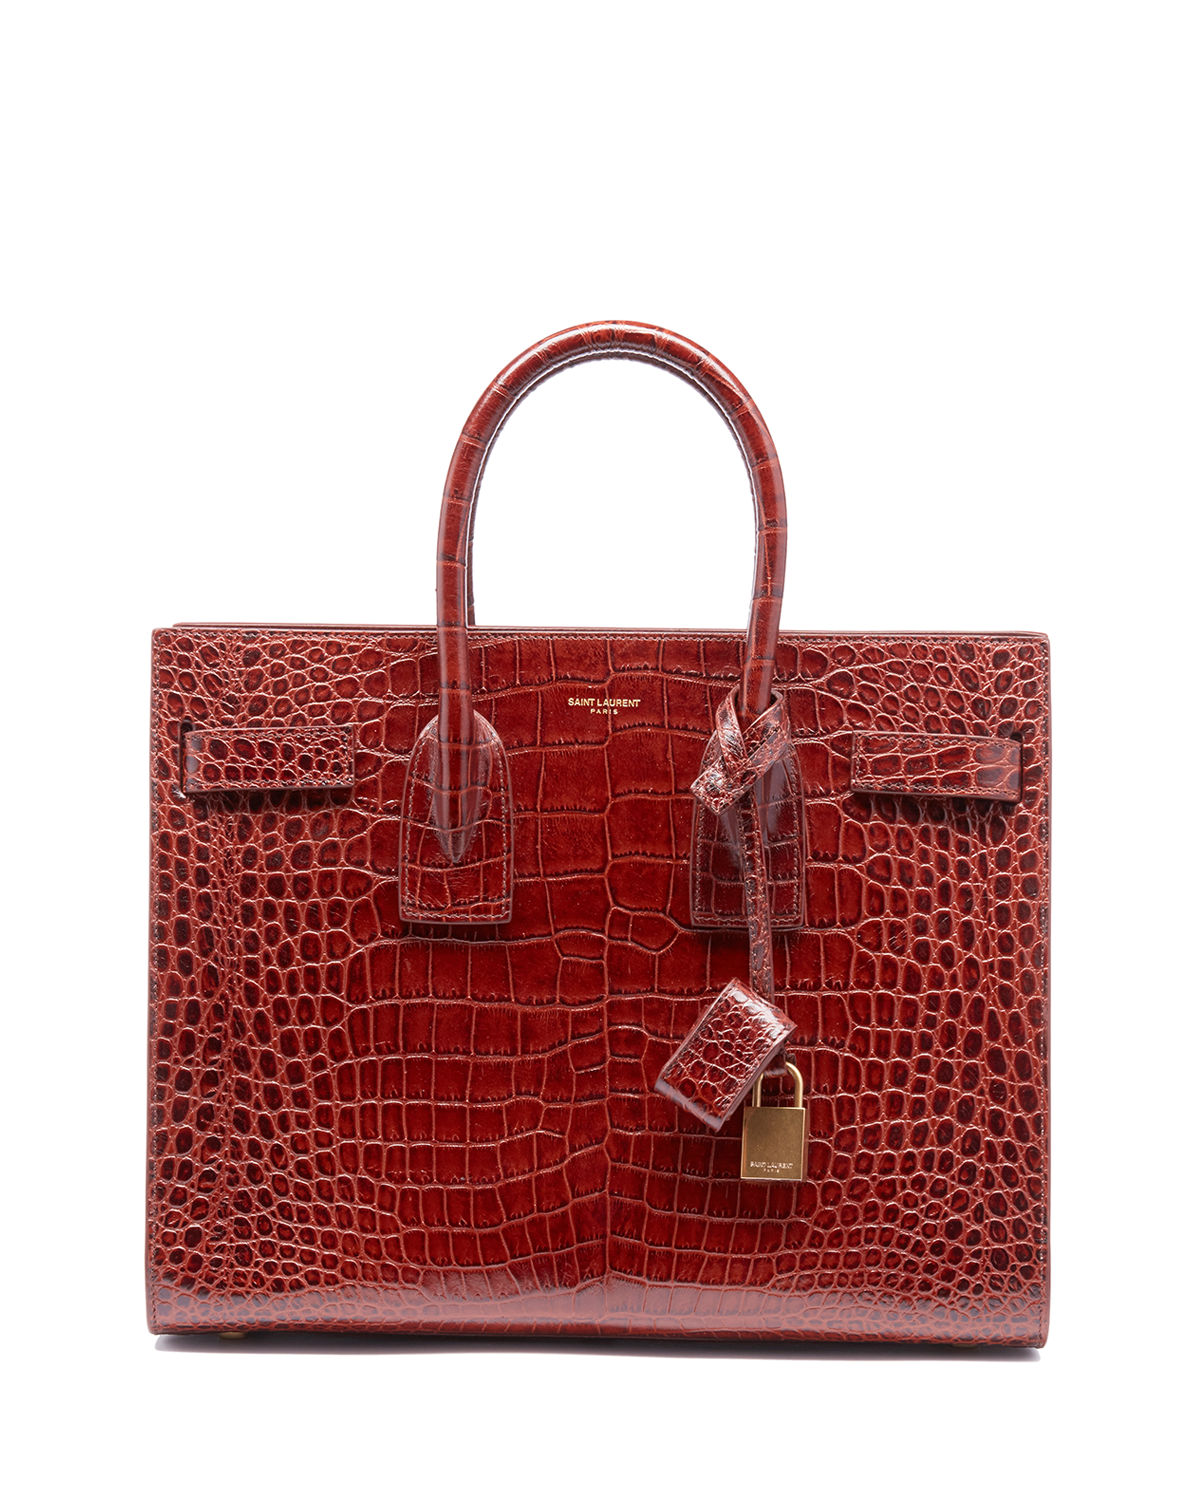 Saint Laurent Sac de Jour Baby Crocodile-Embossed Leather Satchel ... 1a21202d16a35